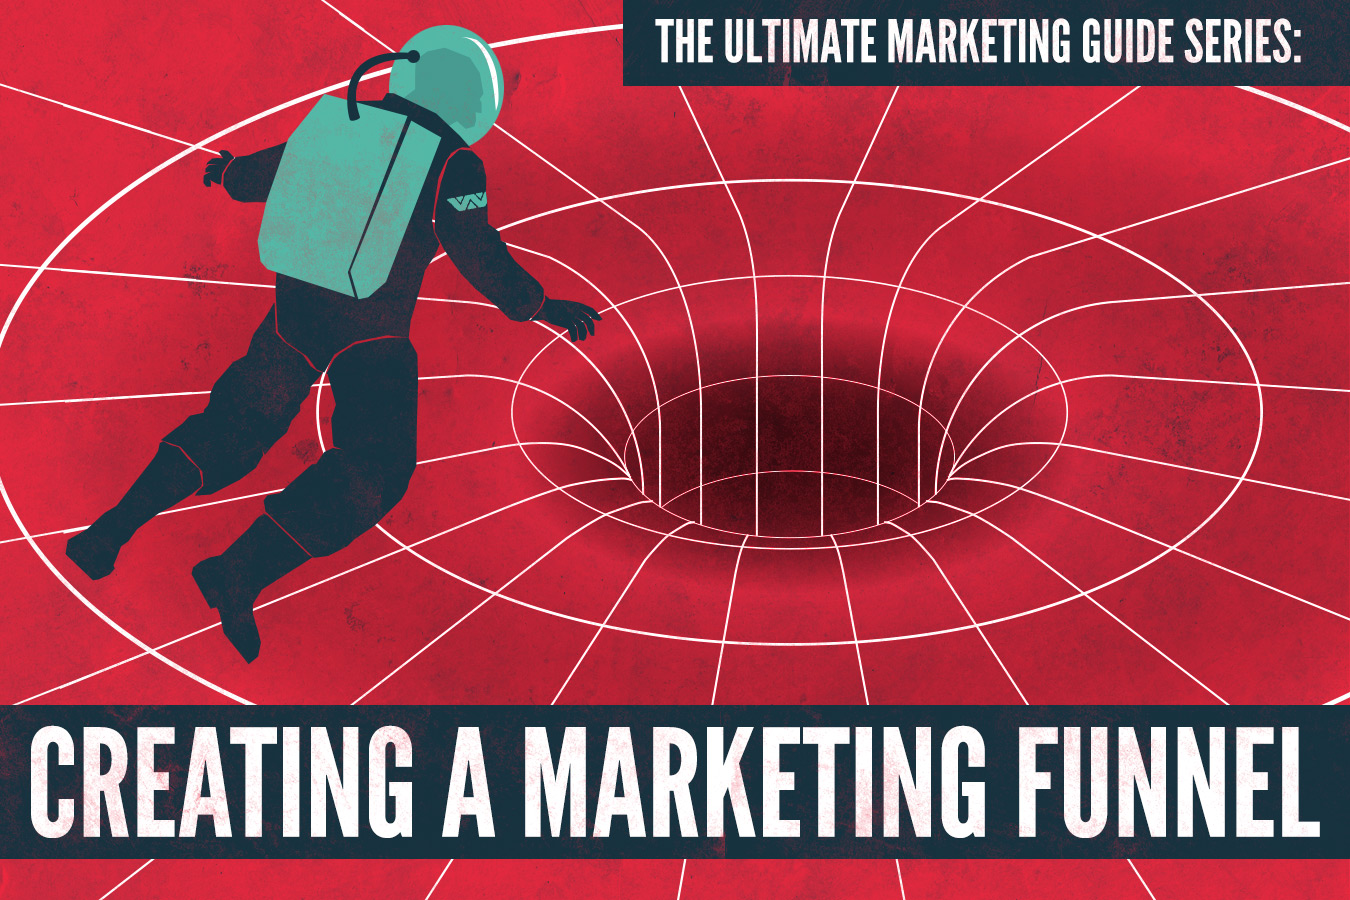 The Ultimate Marketing Guide Series: Creating a Marketing Funnel